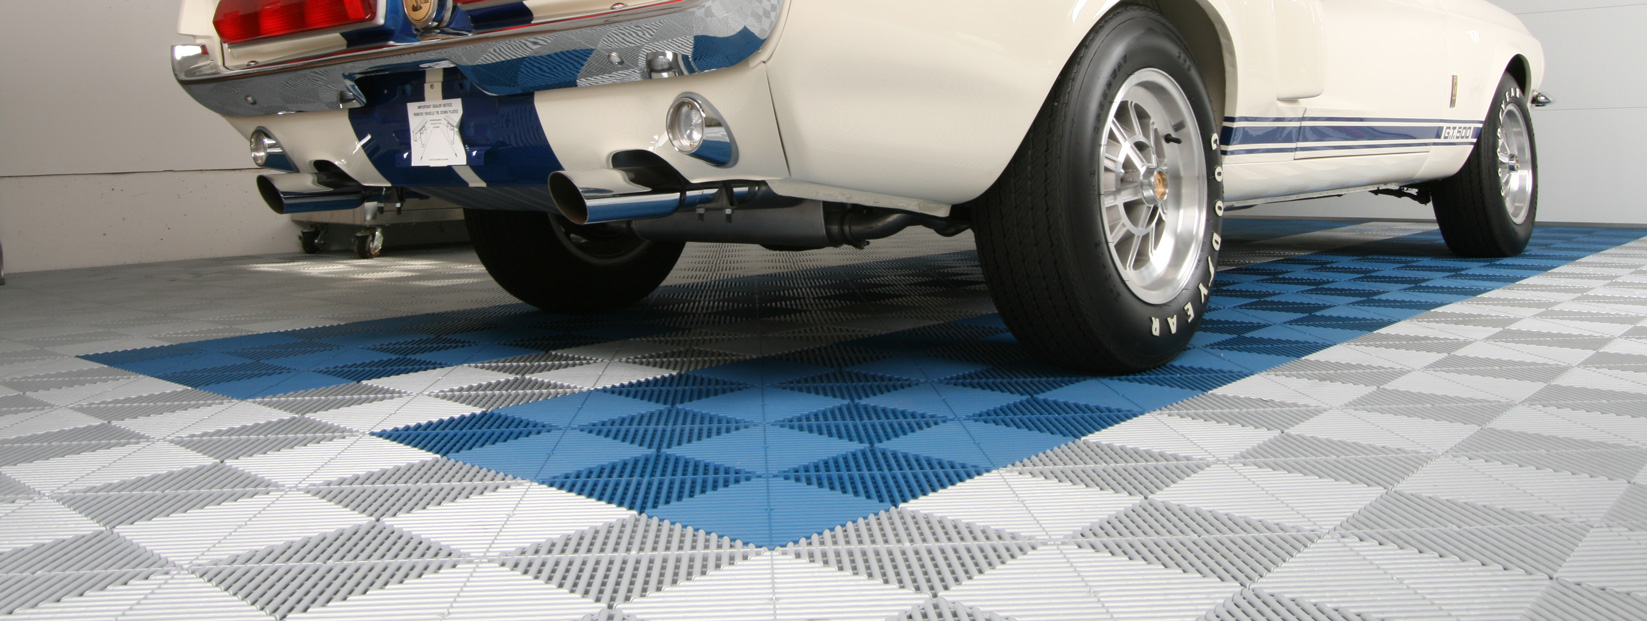 Garage Flooring Tiles Bay Area CA